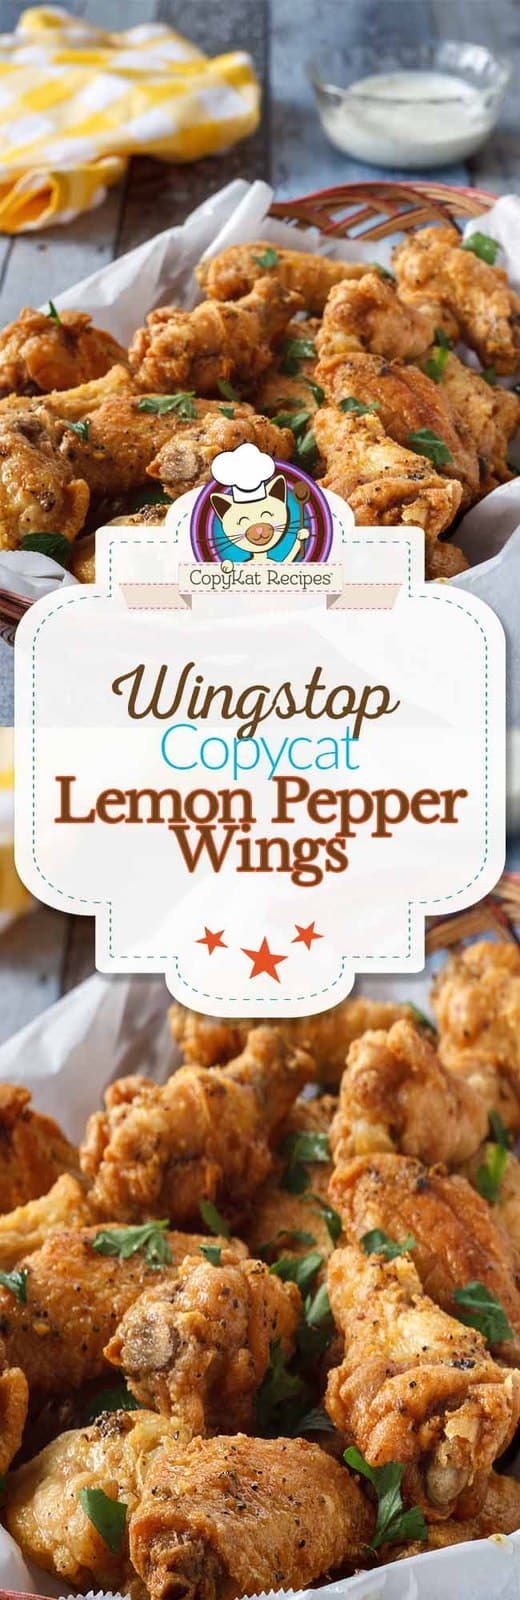 Enjoy these Wingstop Lemon Pepper Wings when you make them at home with this copycat recipe!